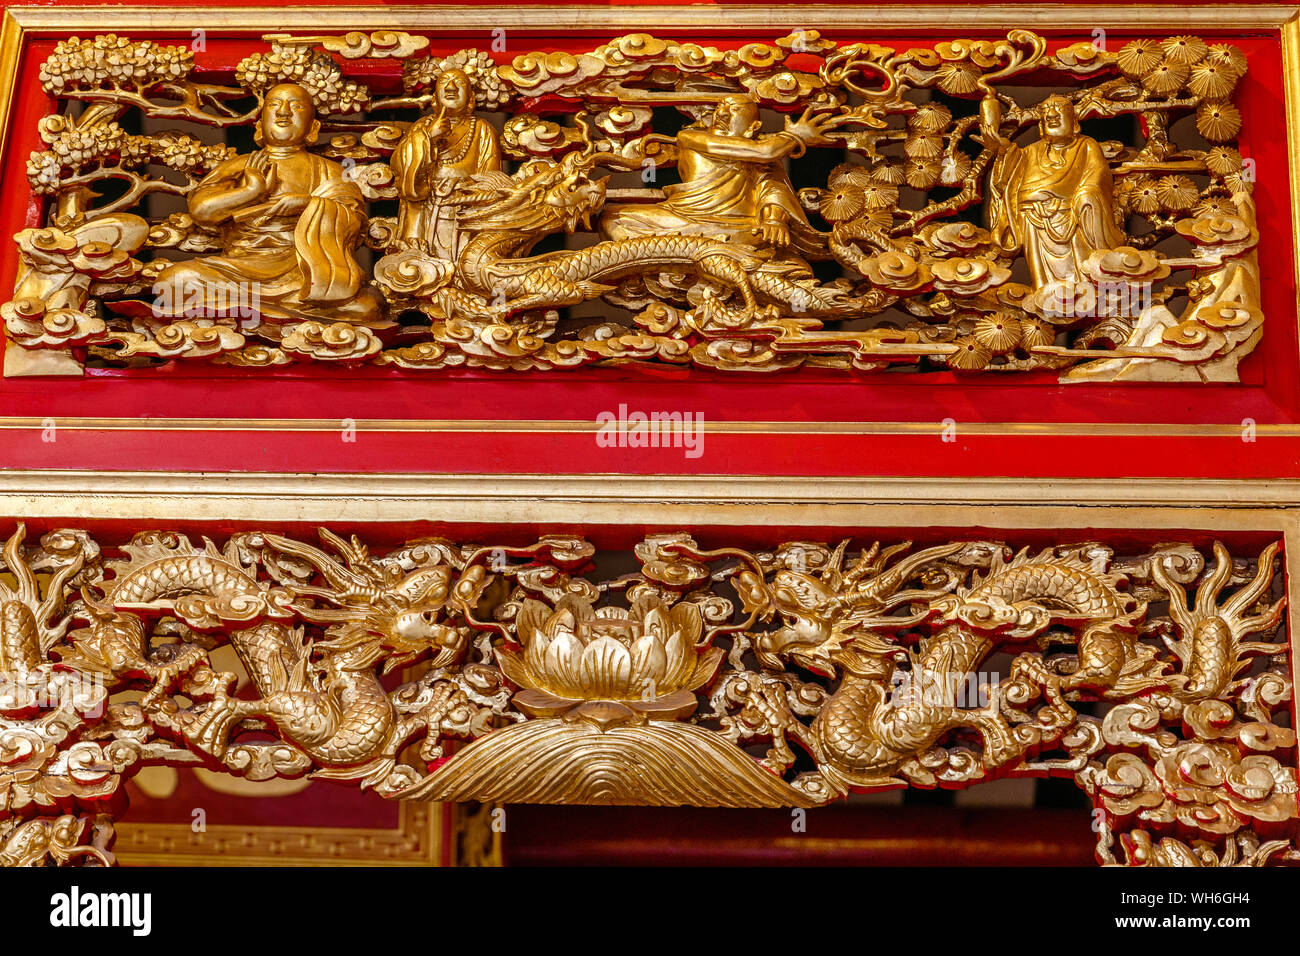 Gold painted carving at Wat Mangkon Kamalawat or Wat Leng Noei Yi, largest and most important Chinese Buddhist temple in Bangkok, Thailand Stock Photo